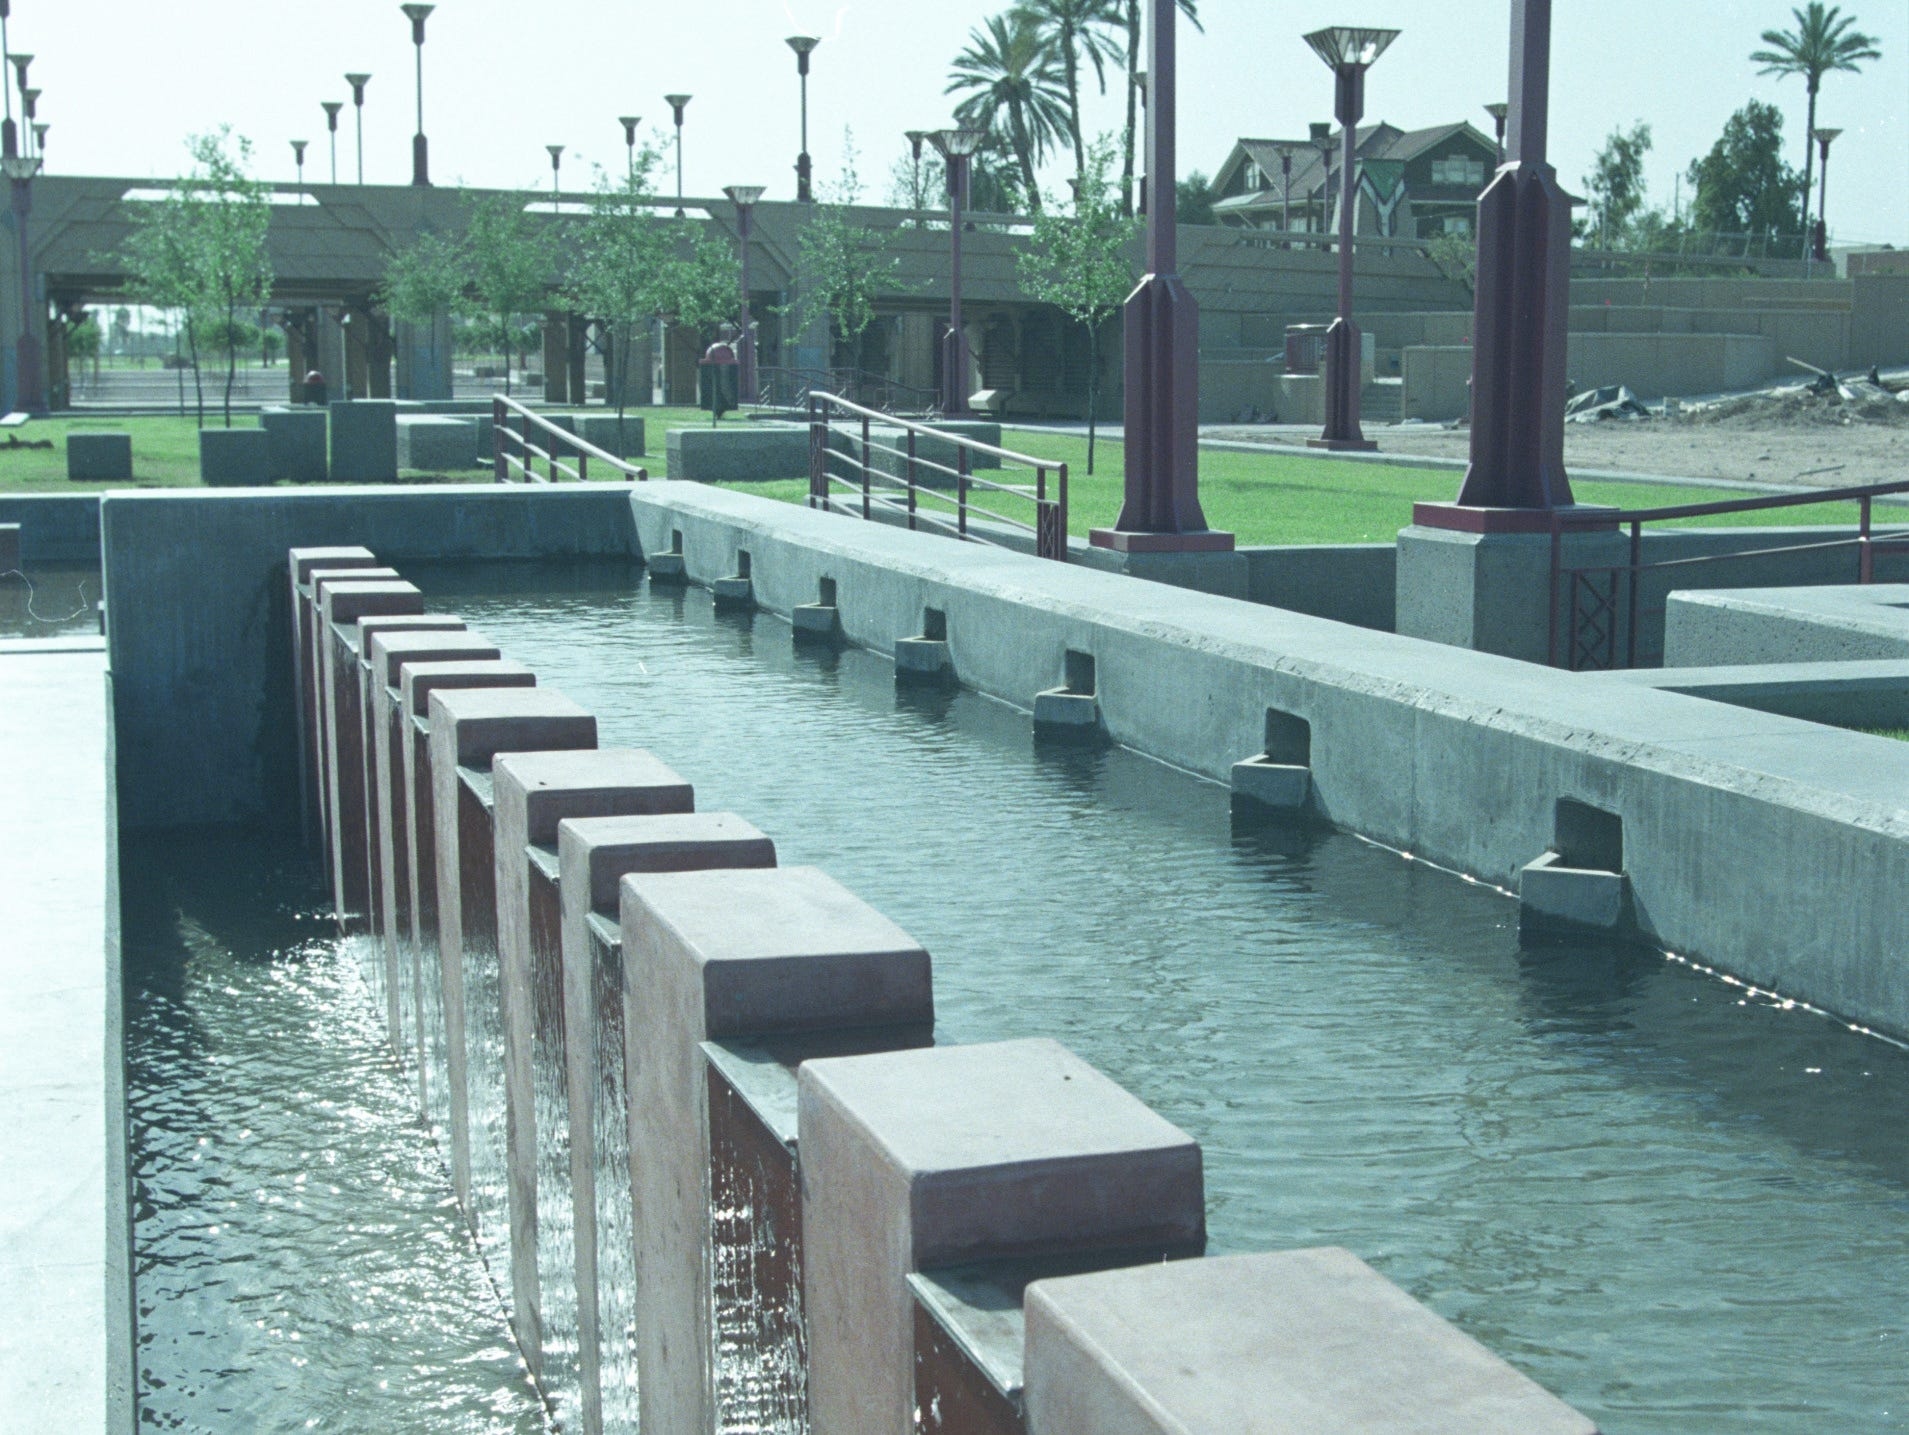 A water feature in spring 1992 of Margaret T. Hance Park in central Phoenix.